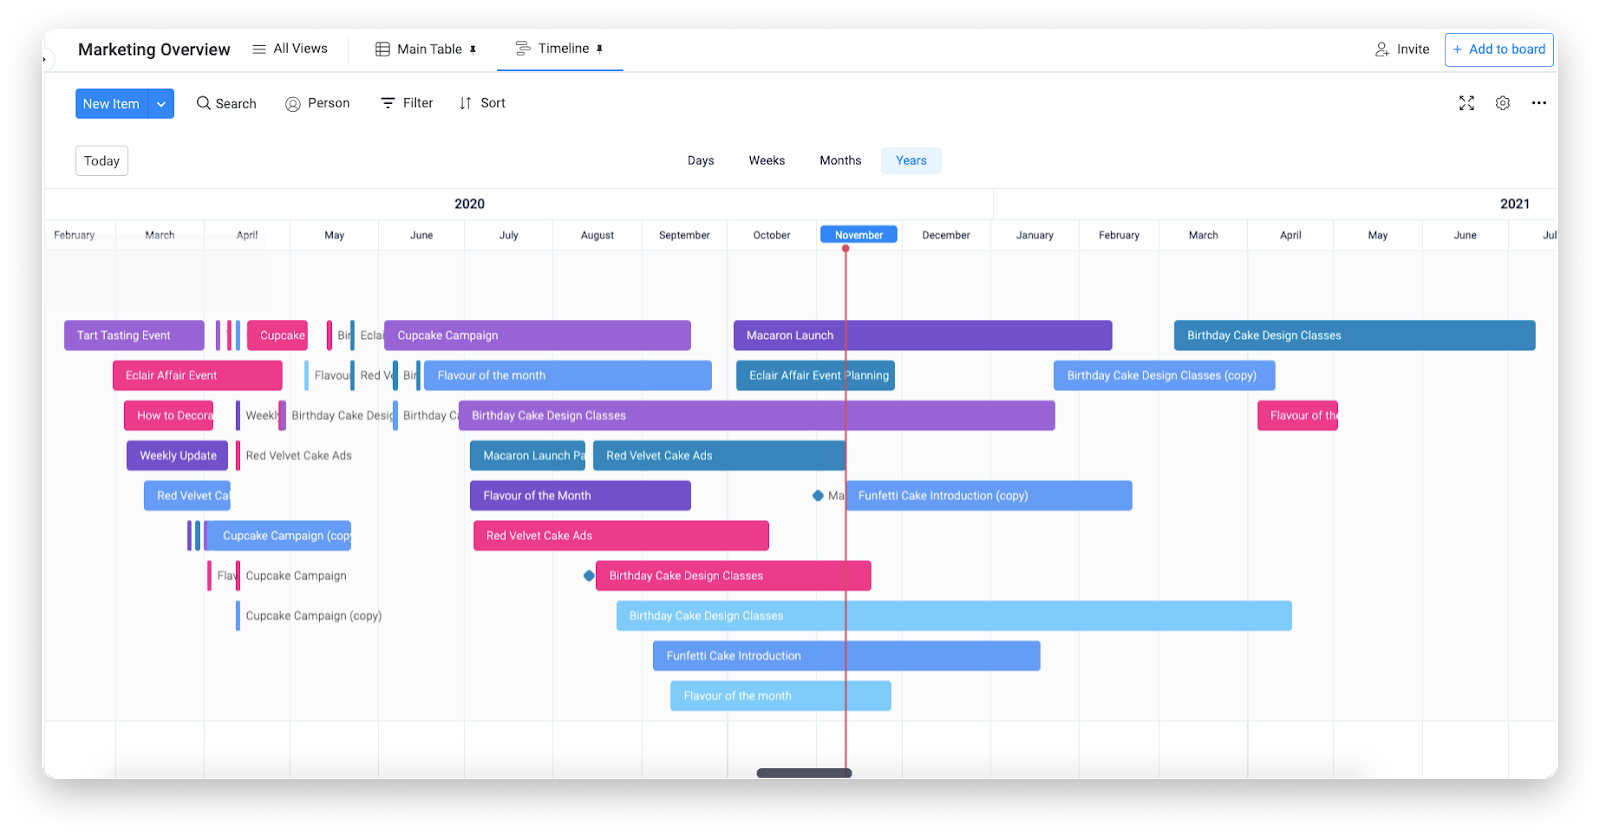 The timeline view provides full visibility to all your tasks in one simple view.